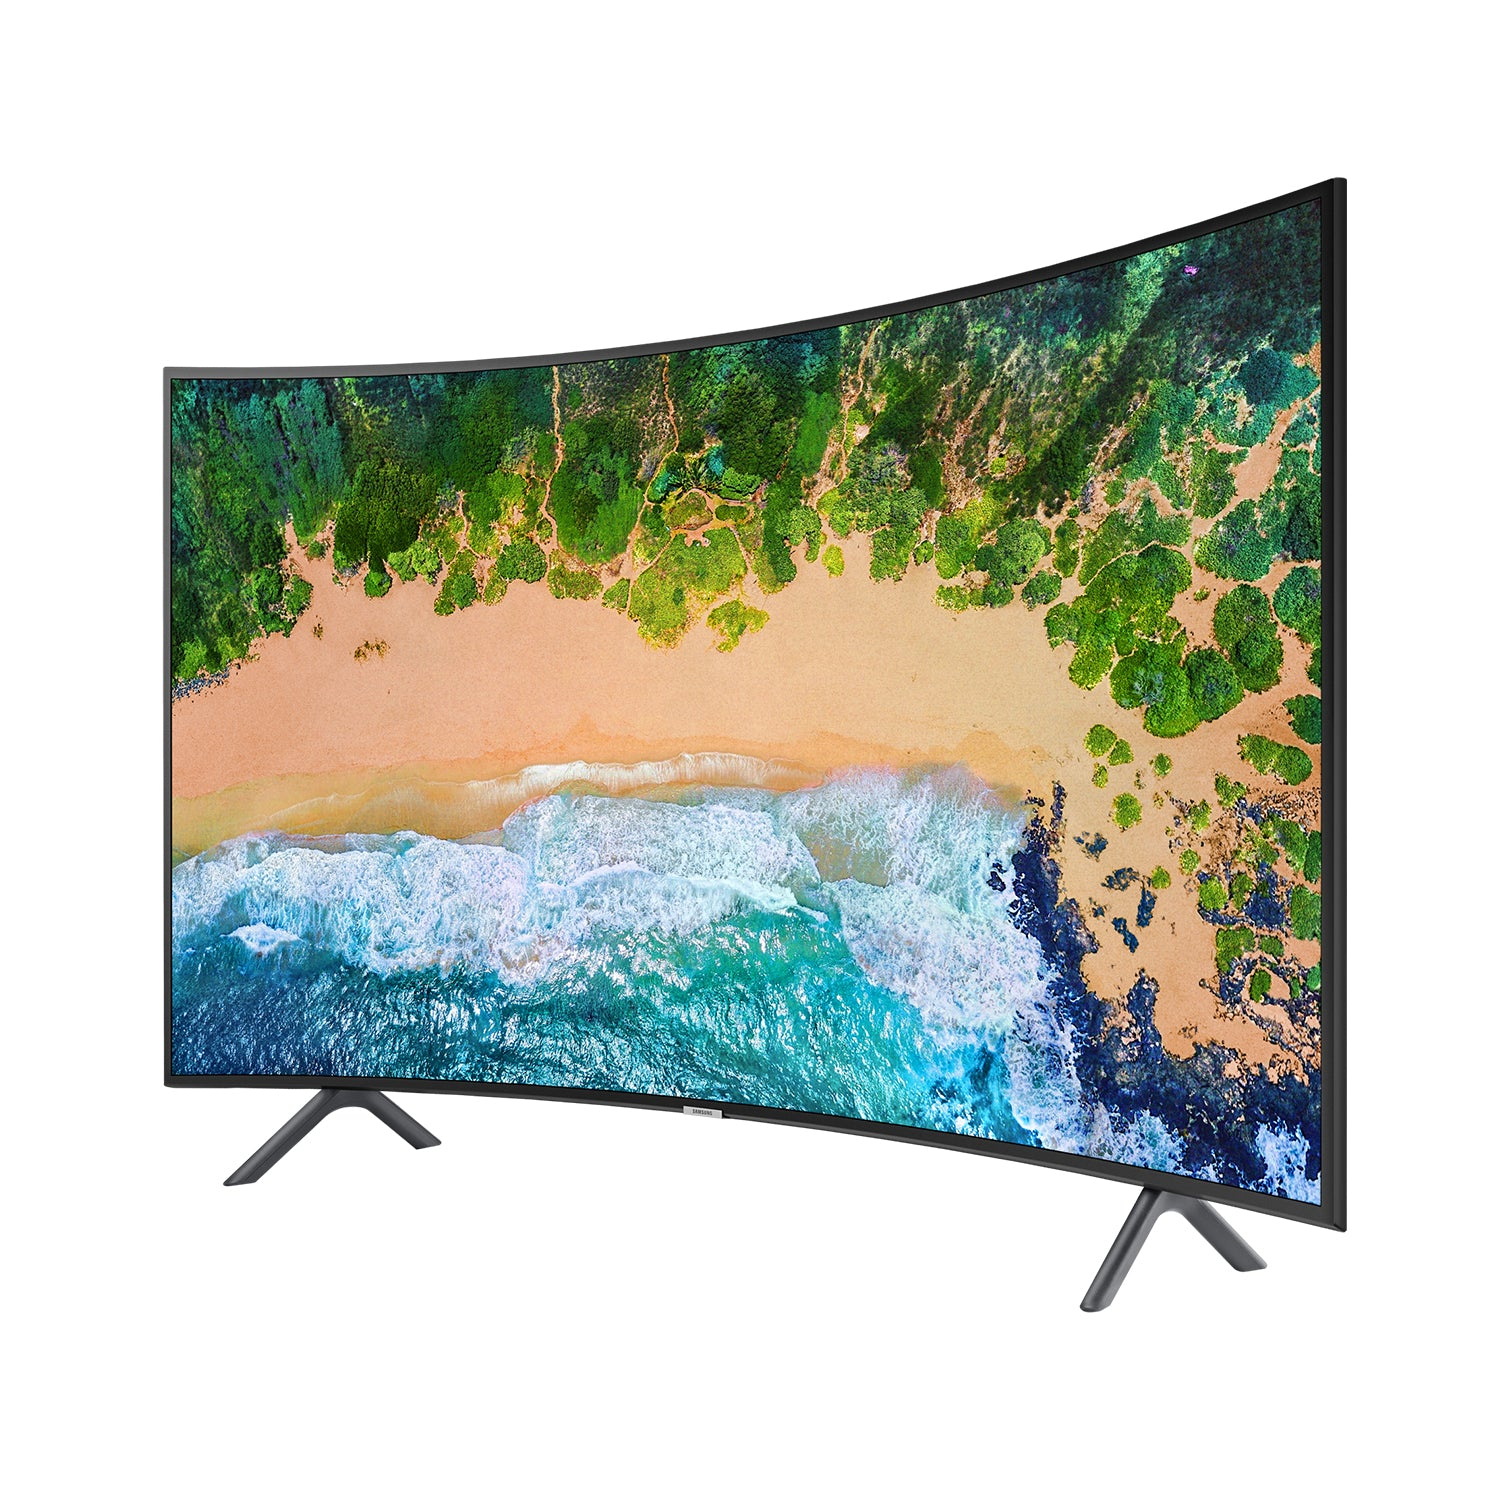 49-inch Curved LED 4K UHD Smart TV